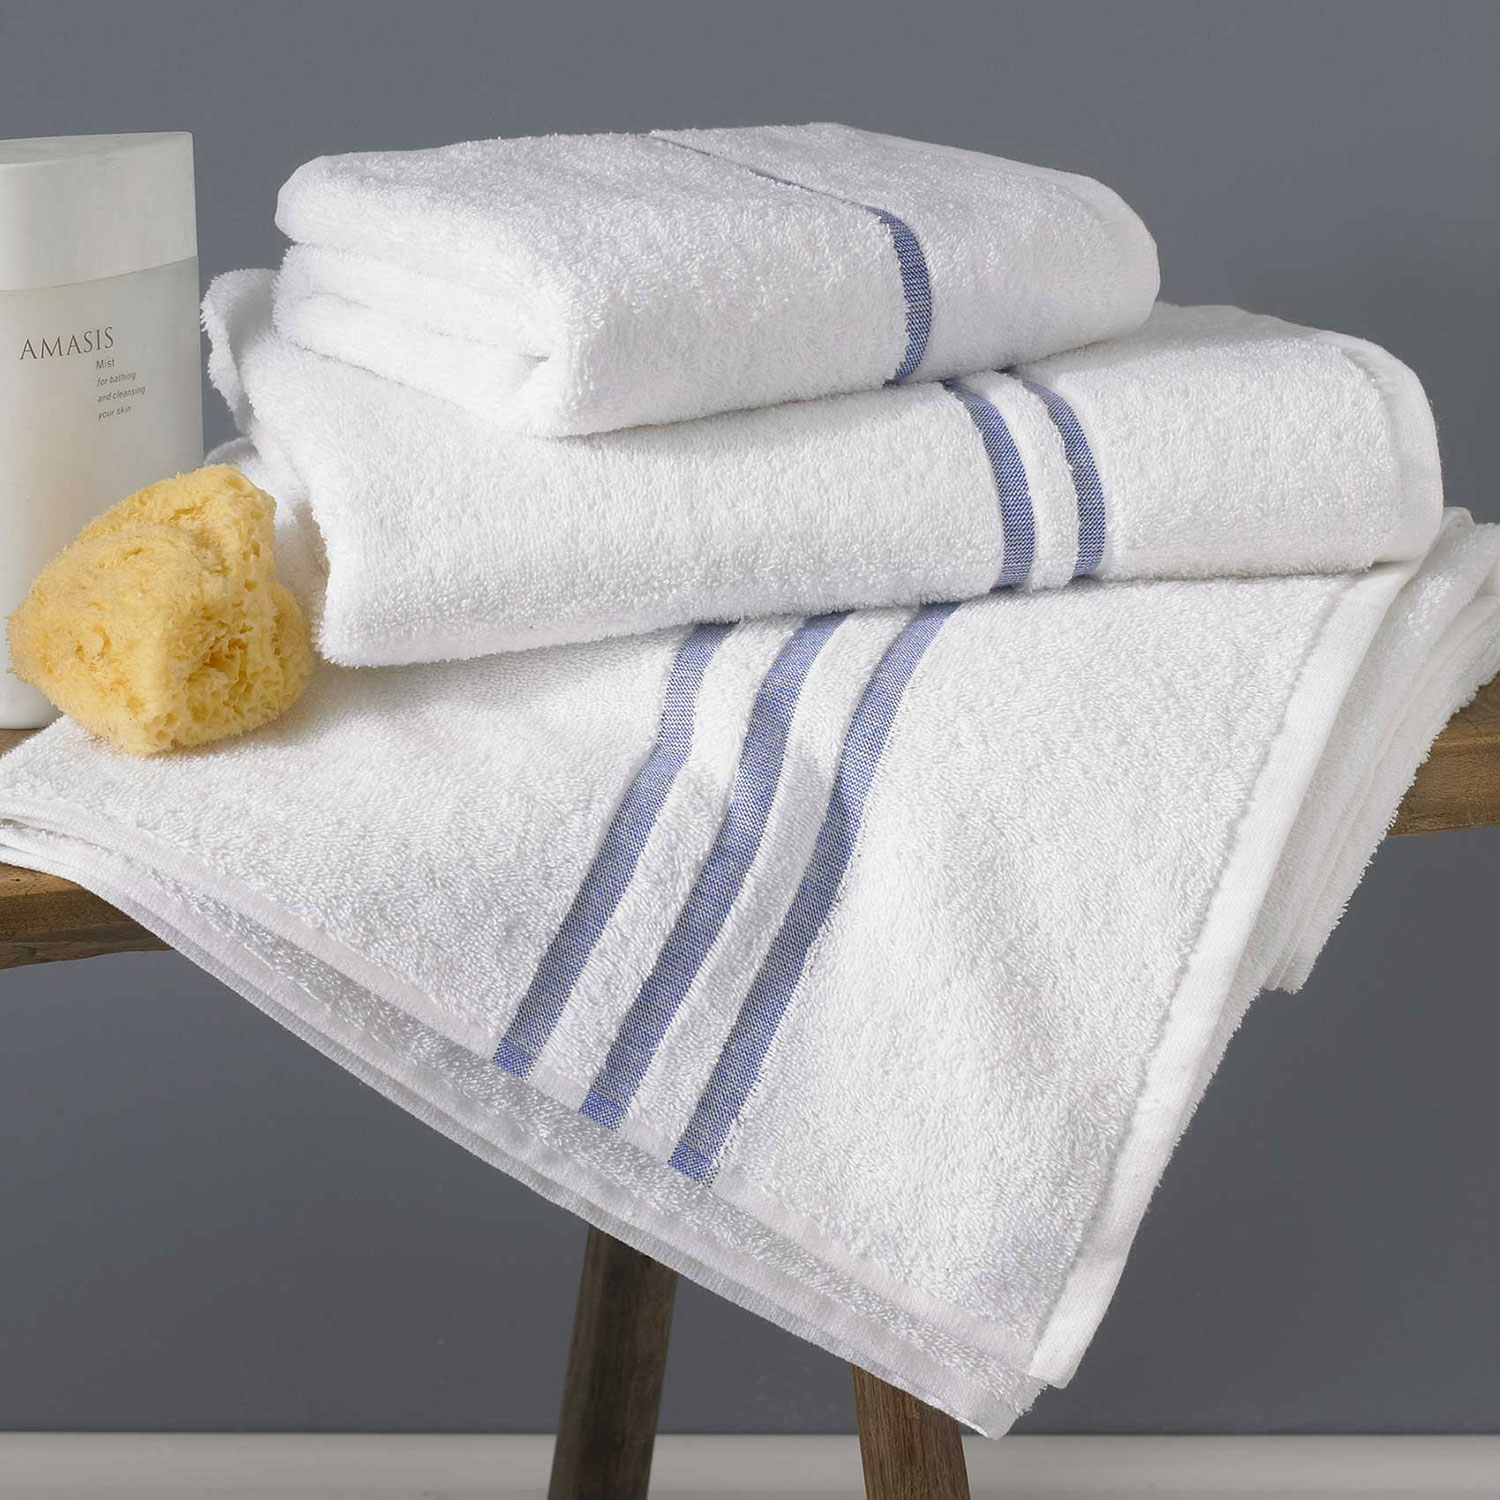 BLUE RIVER COTTON TOWELS